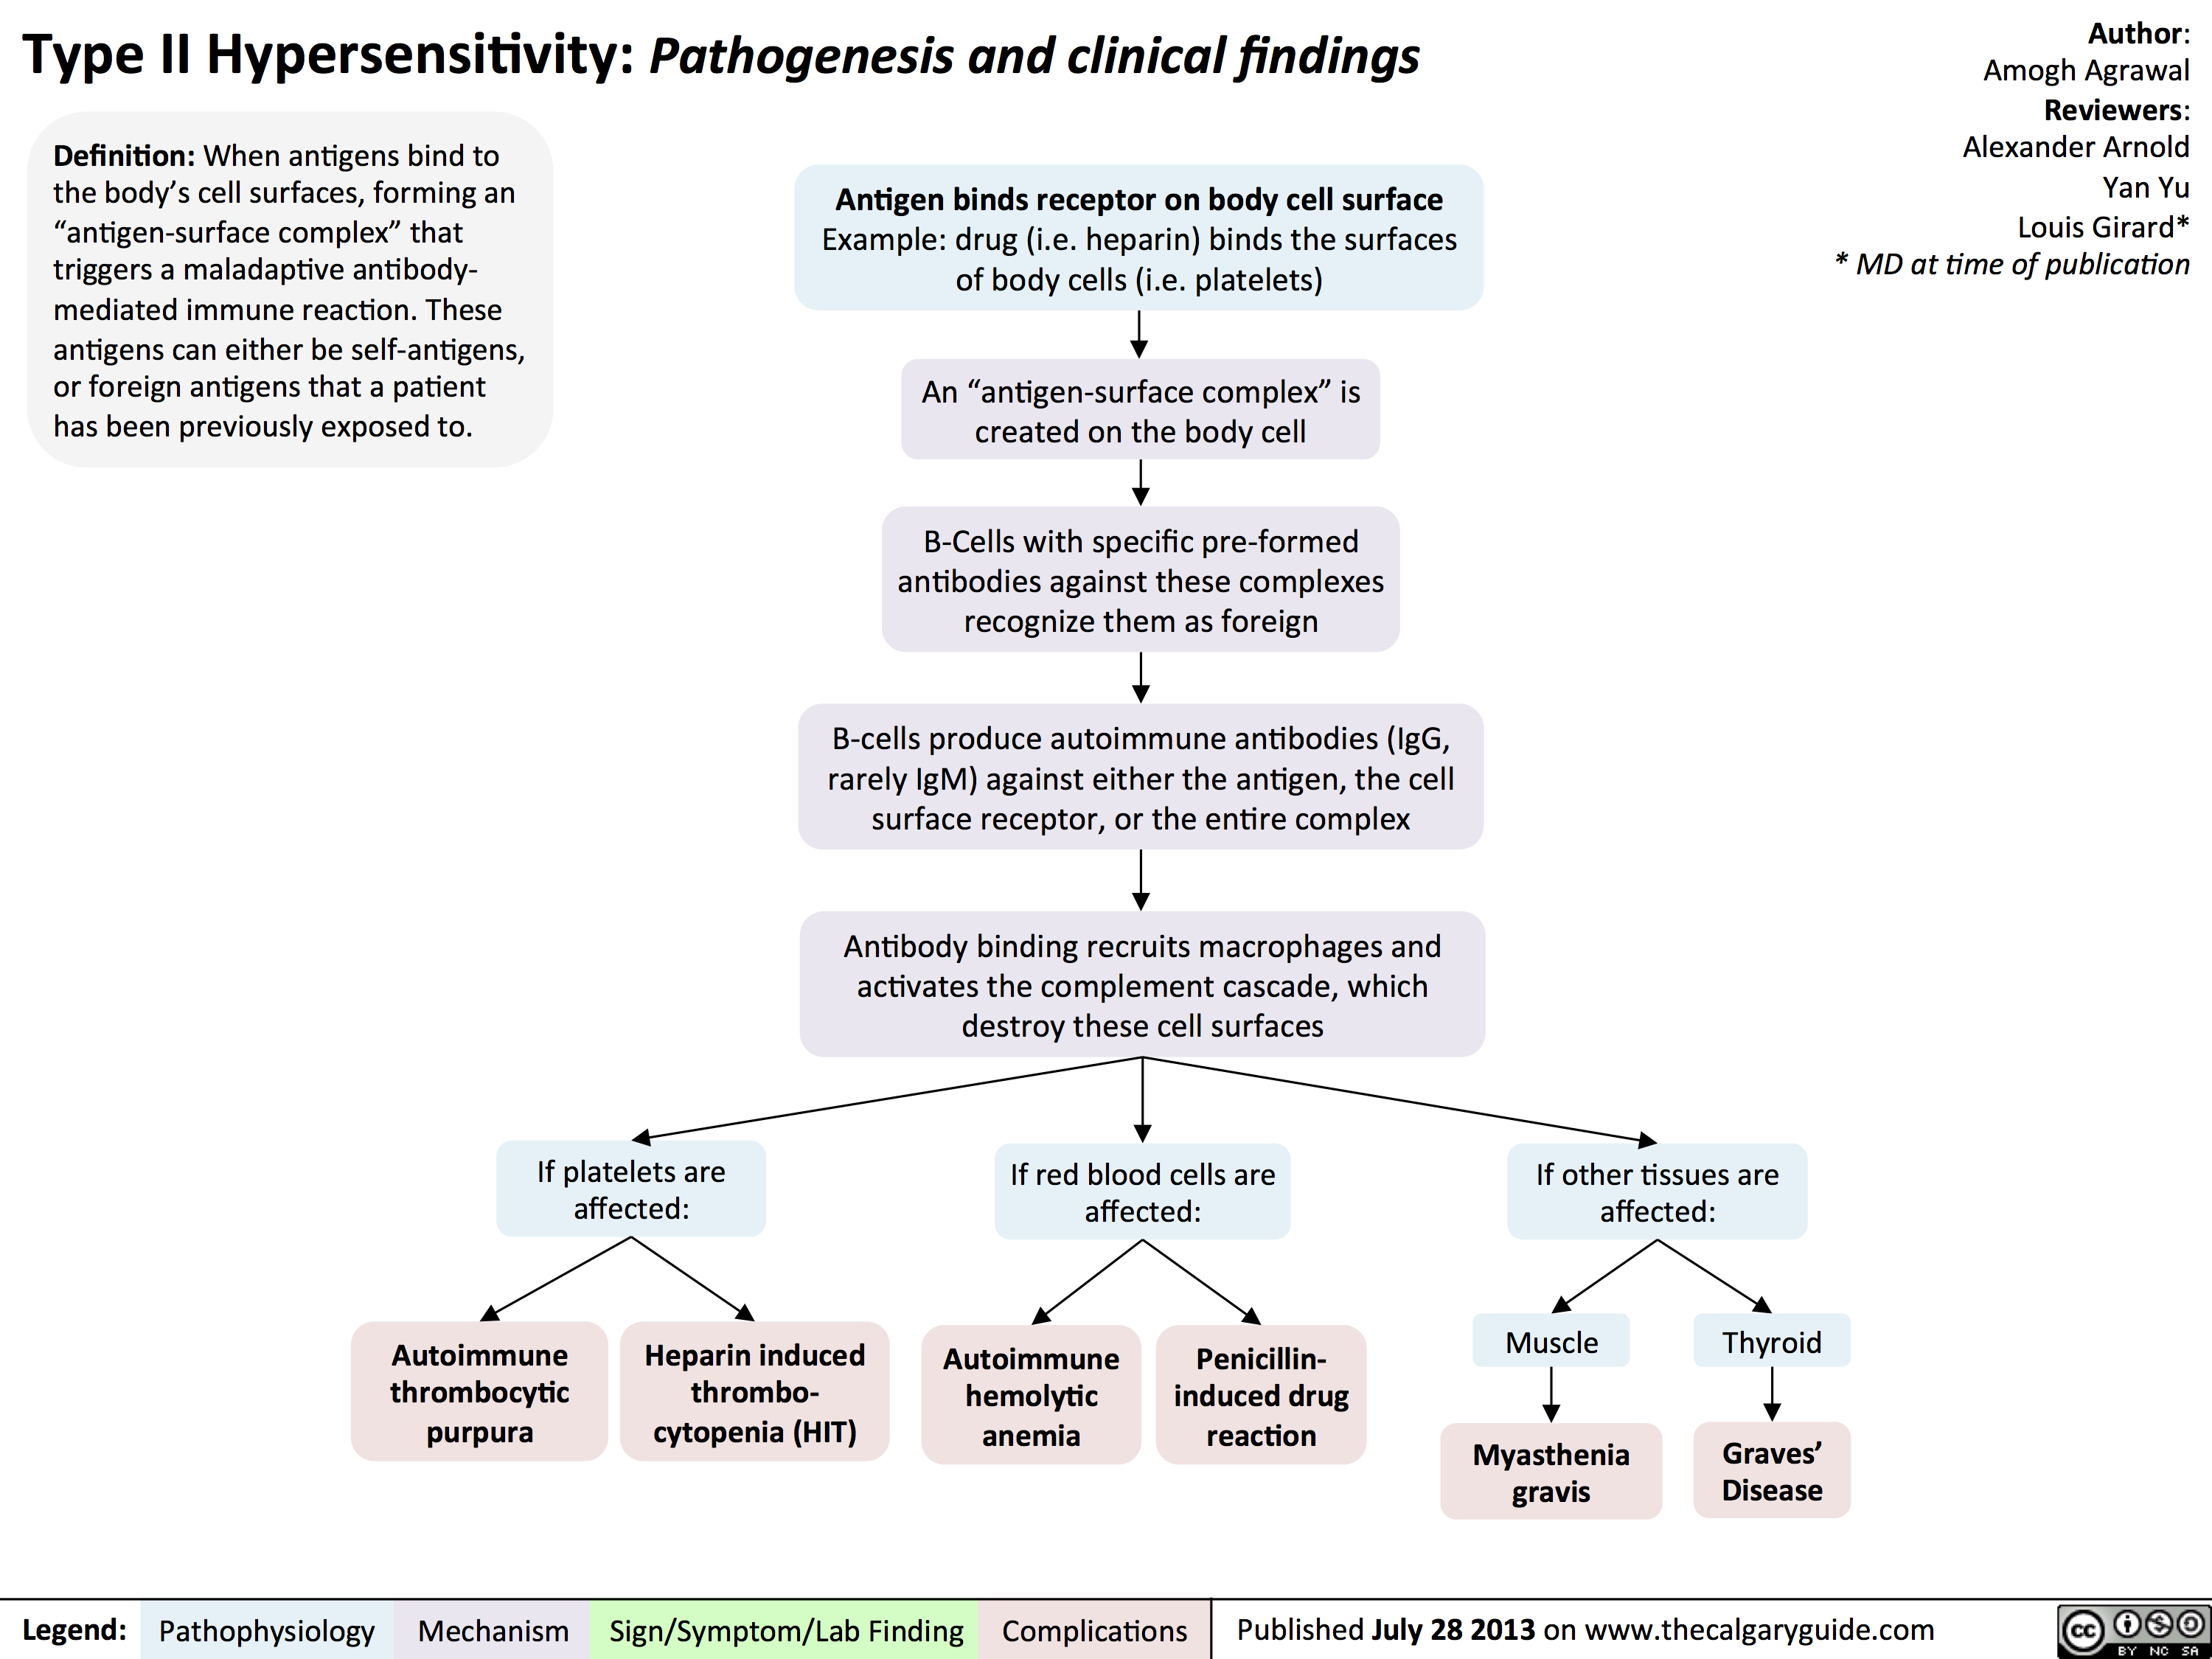 Type II Hypersensitivity: Pathogenesis and clinical findings